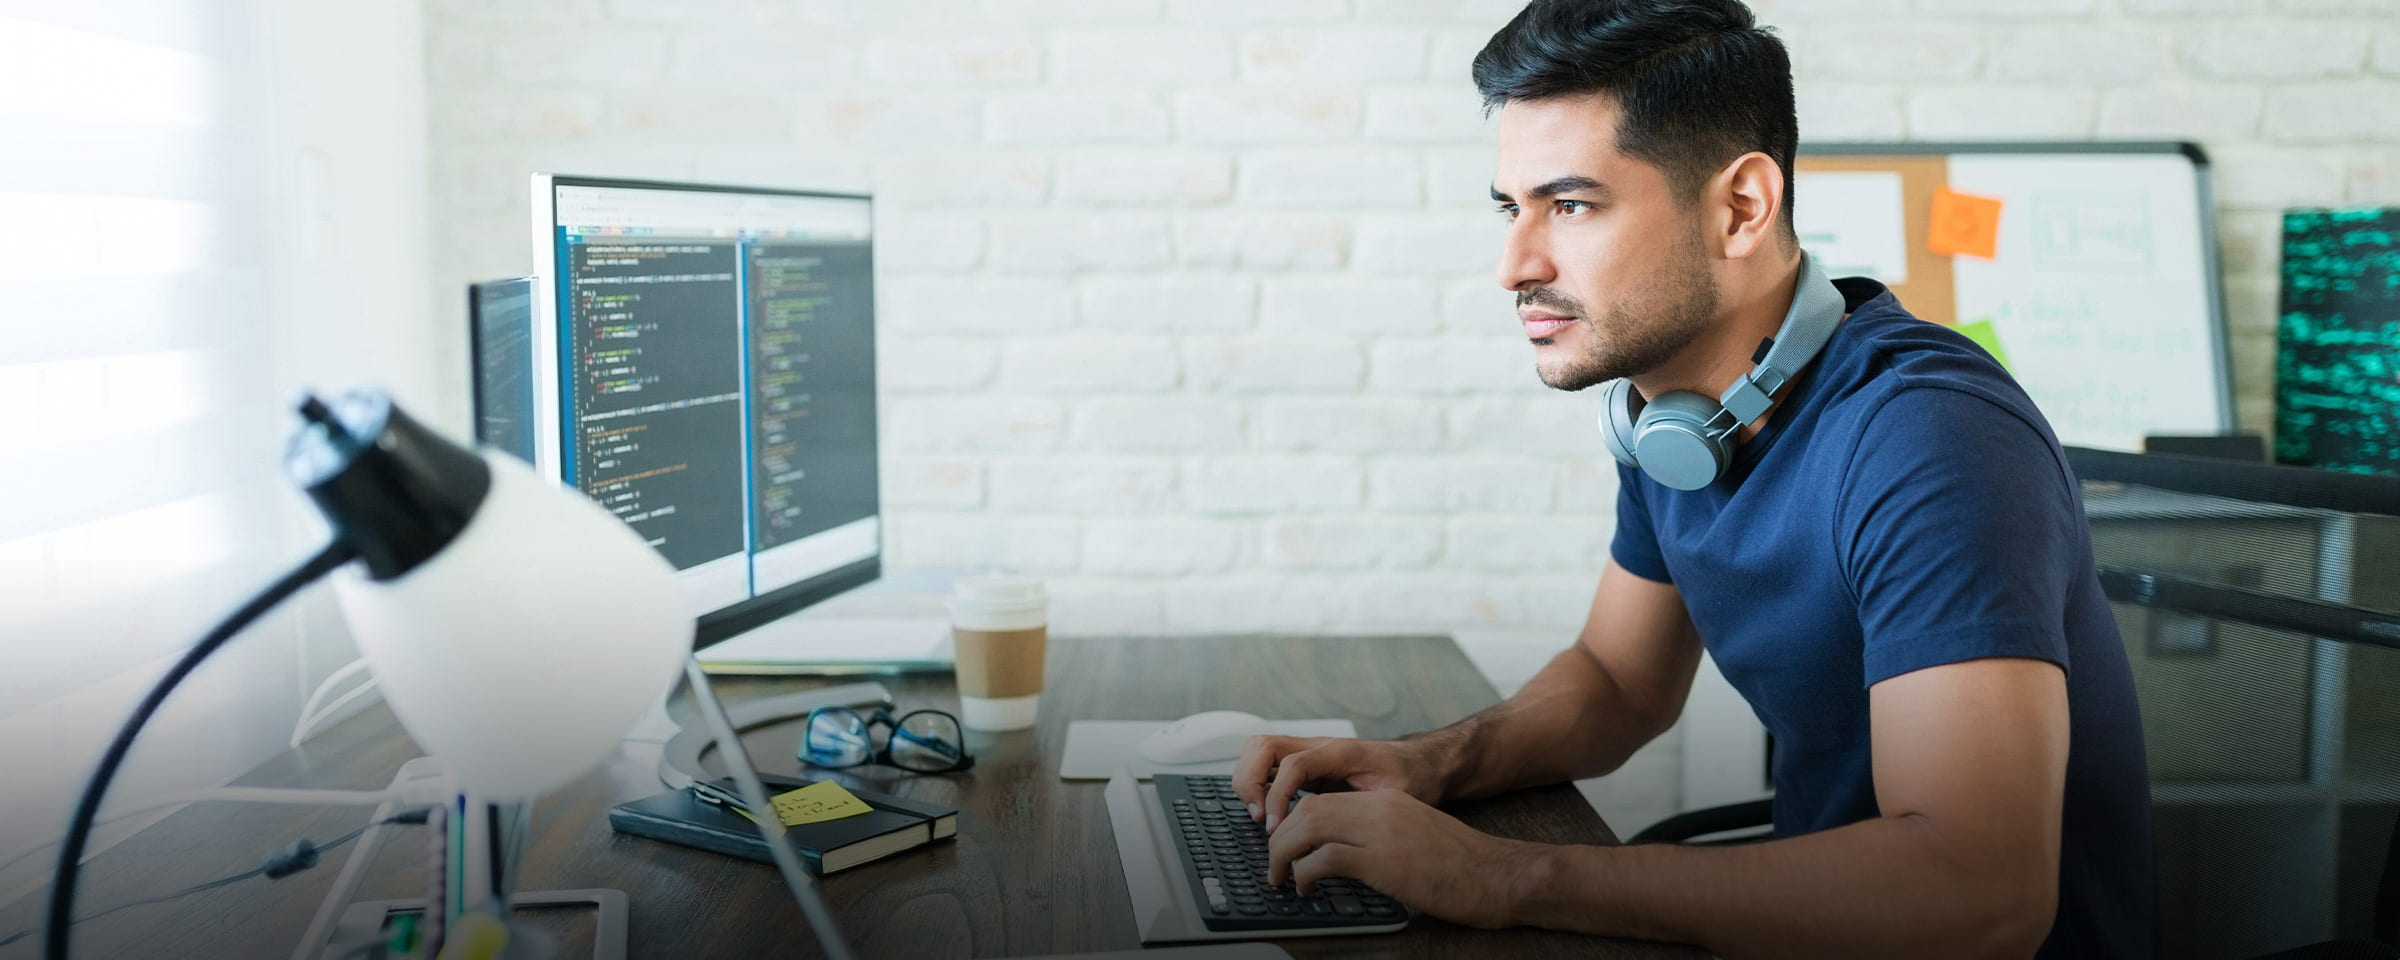 Man at desk working on computer